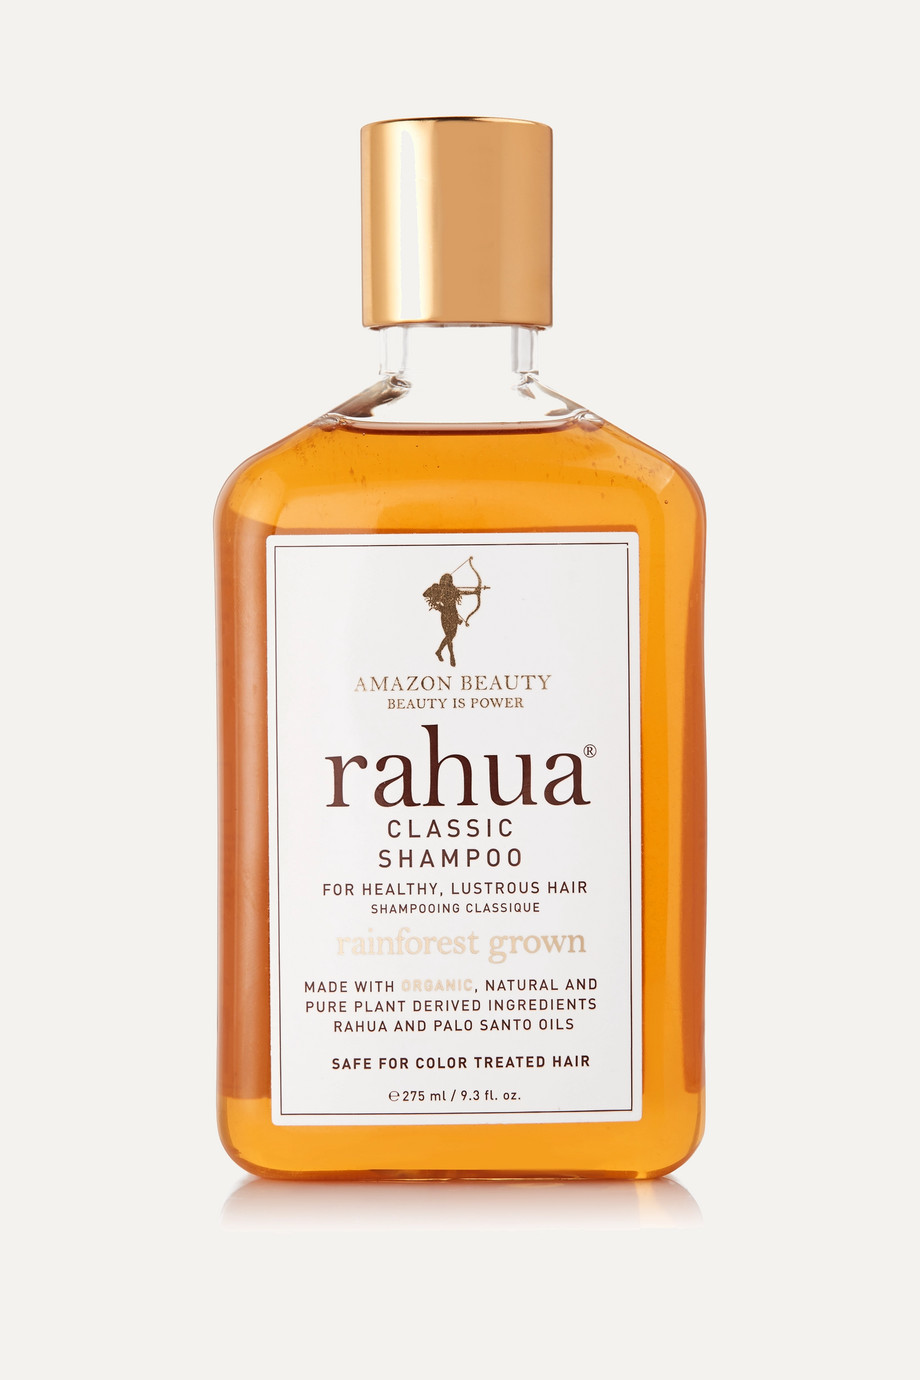 Shampoo, 275ml, by Rahua